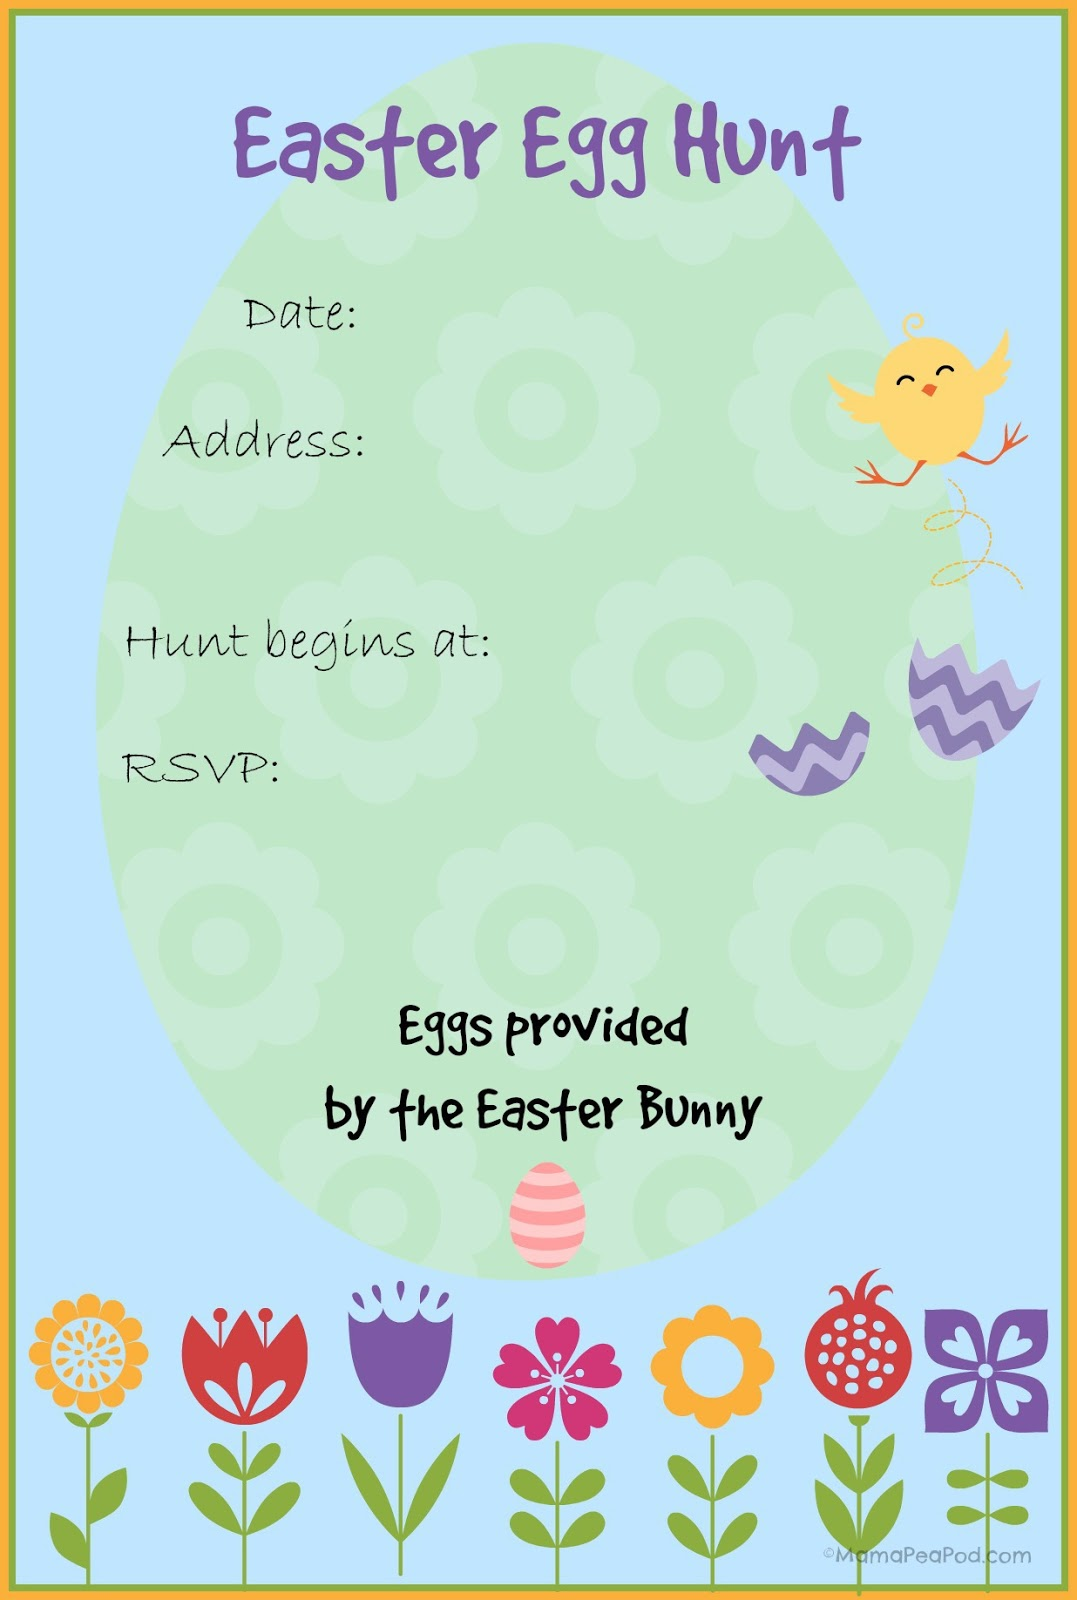 easter picture templates - mama pea pod free printable easter egg hunt invitation